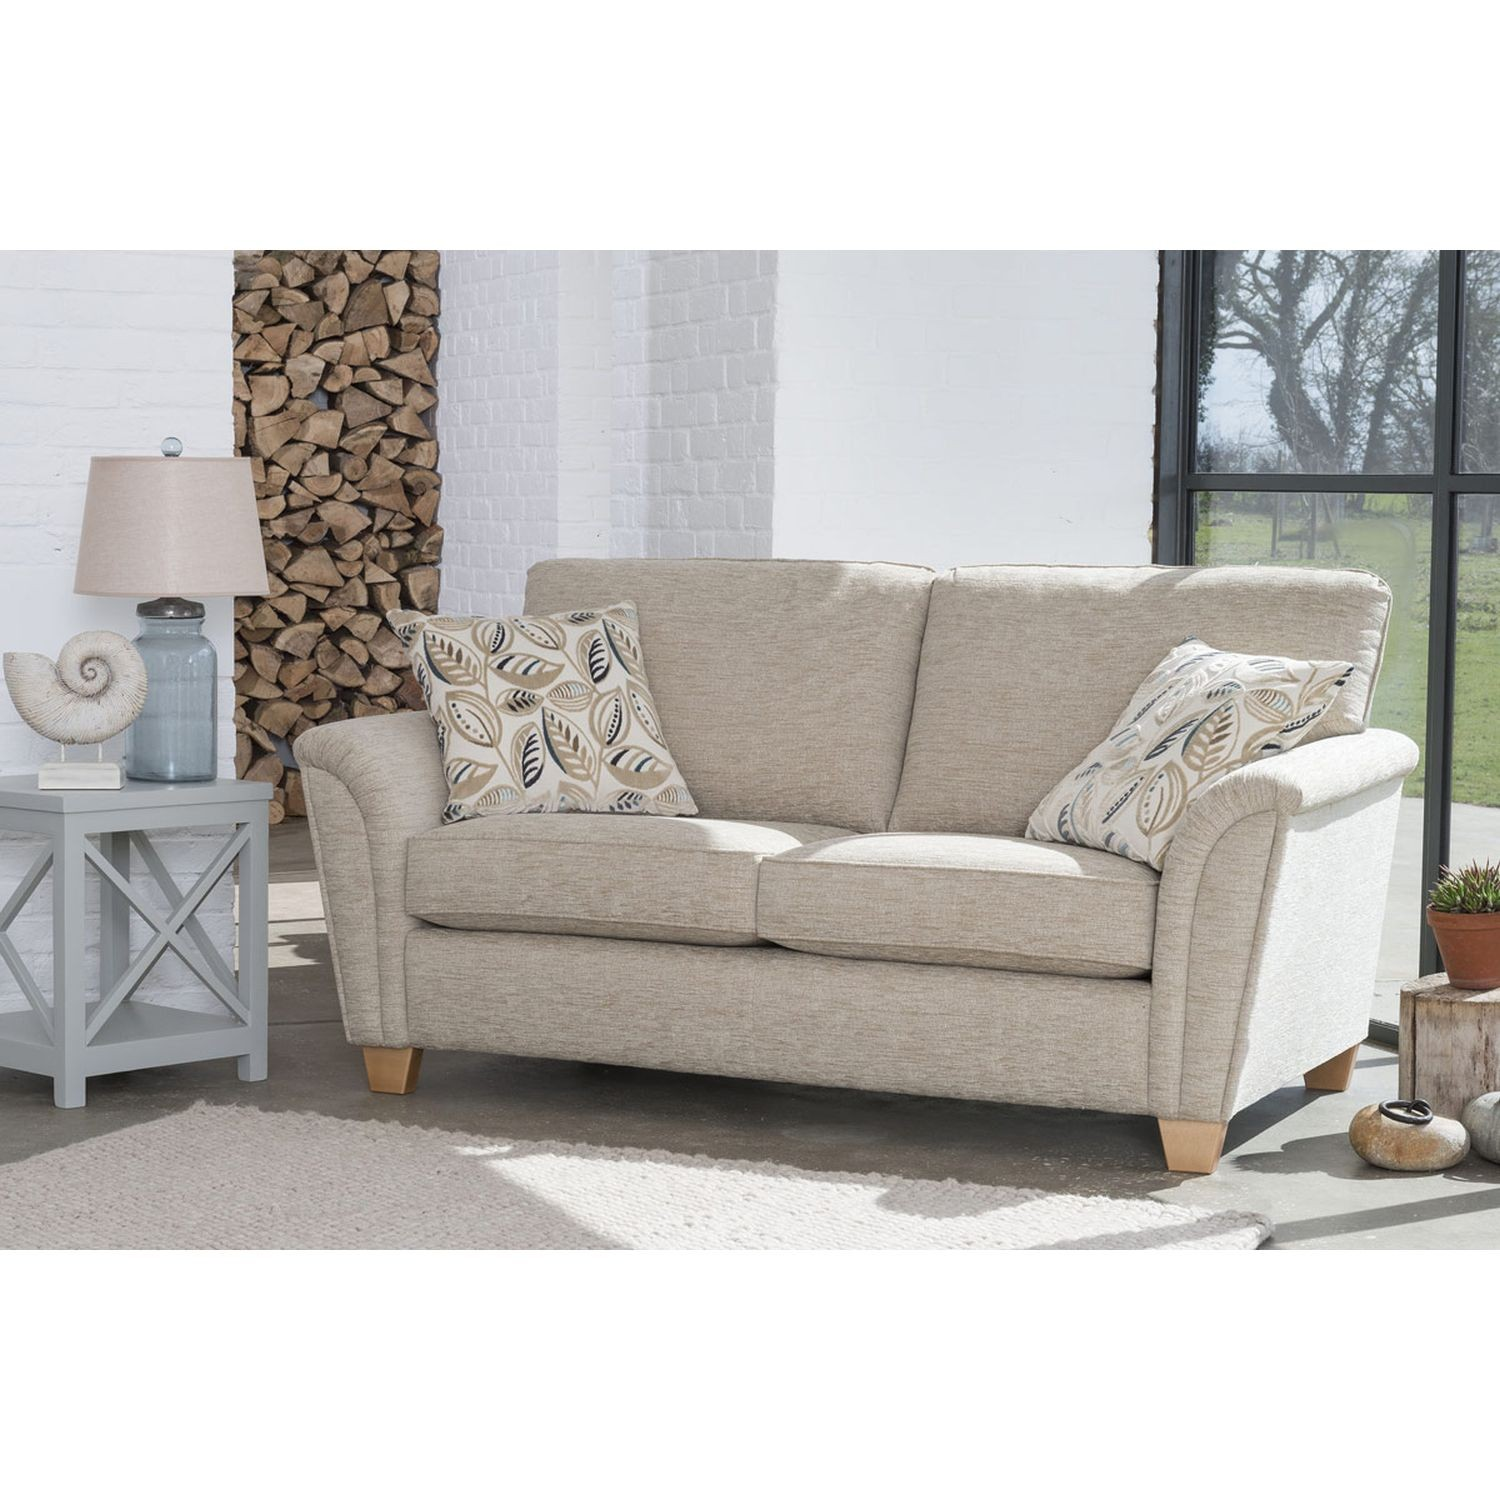 barcelona sofa big design couch 2 seater leekes